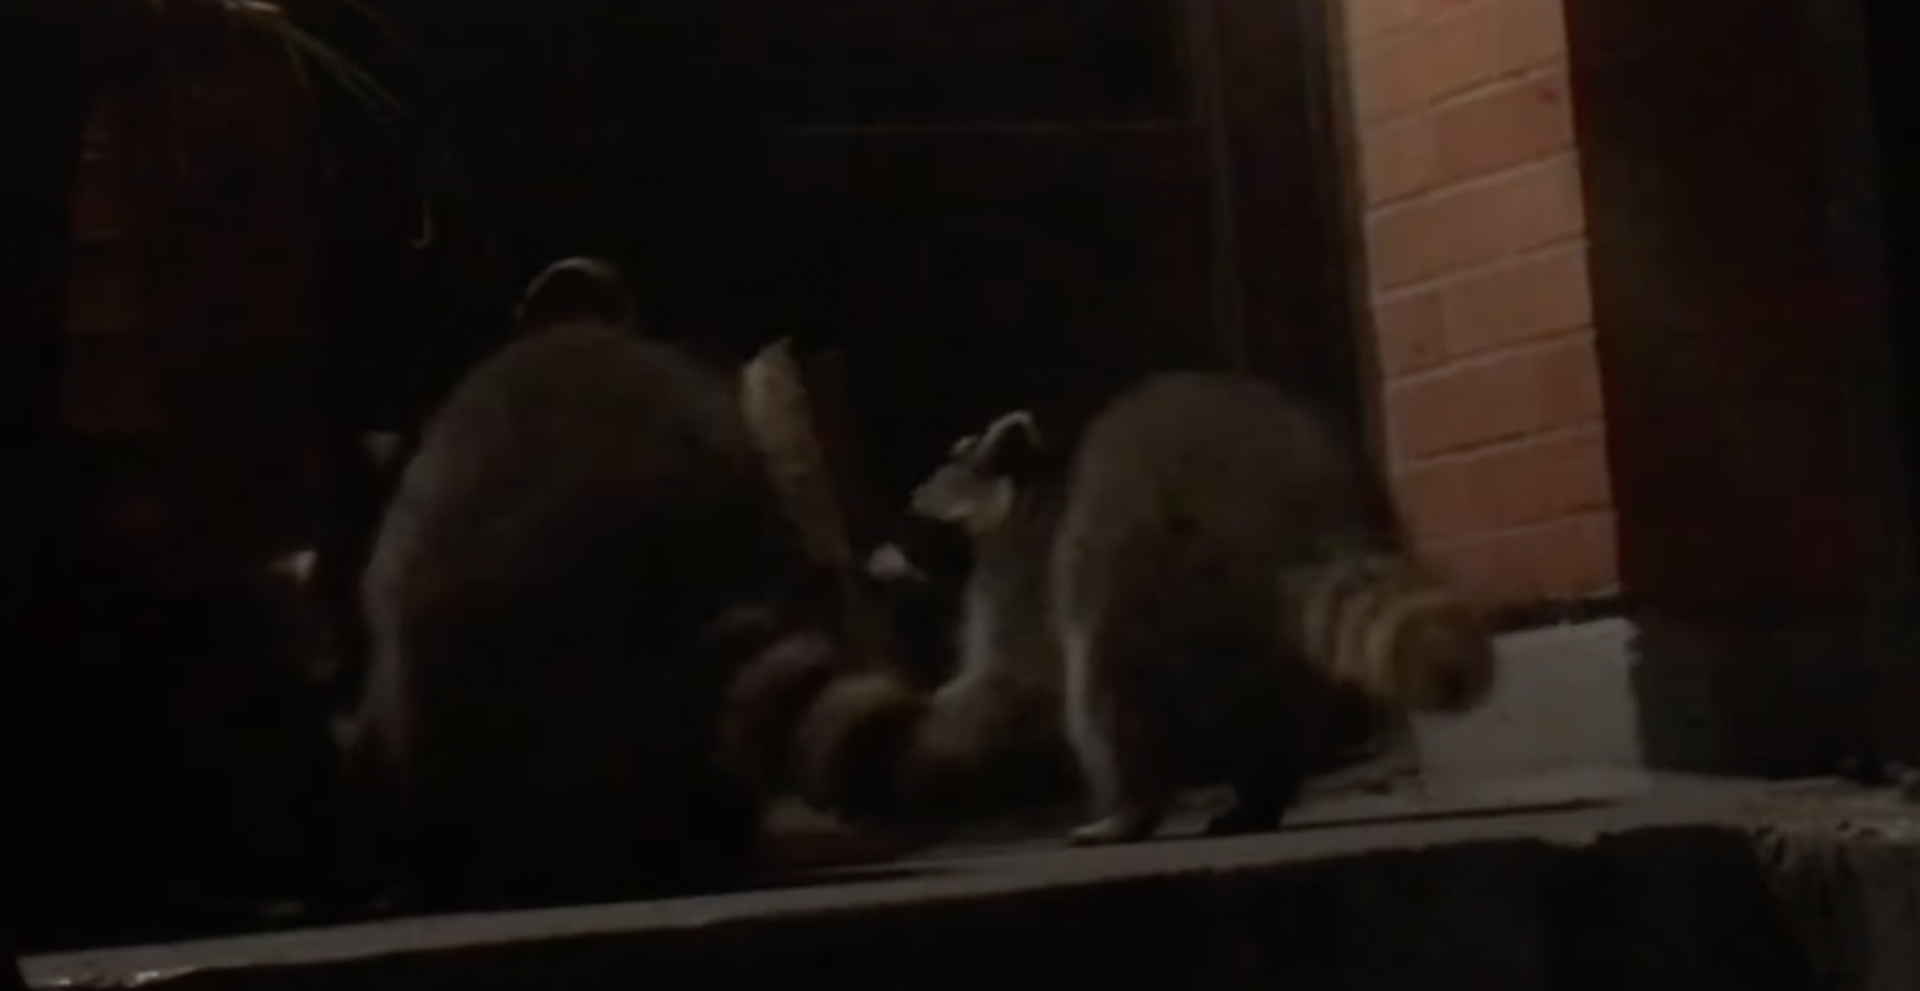 Toronto raccoons eat delivery order before customer could claim it (VIDEO)